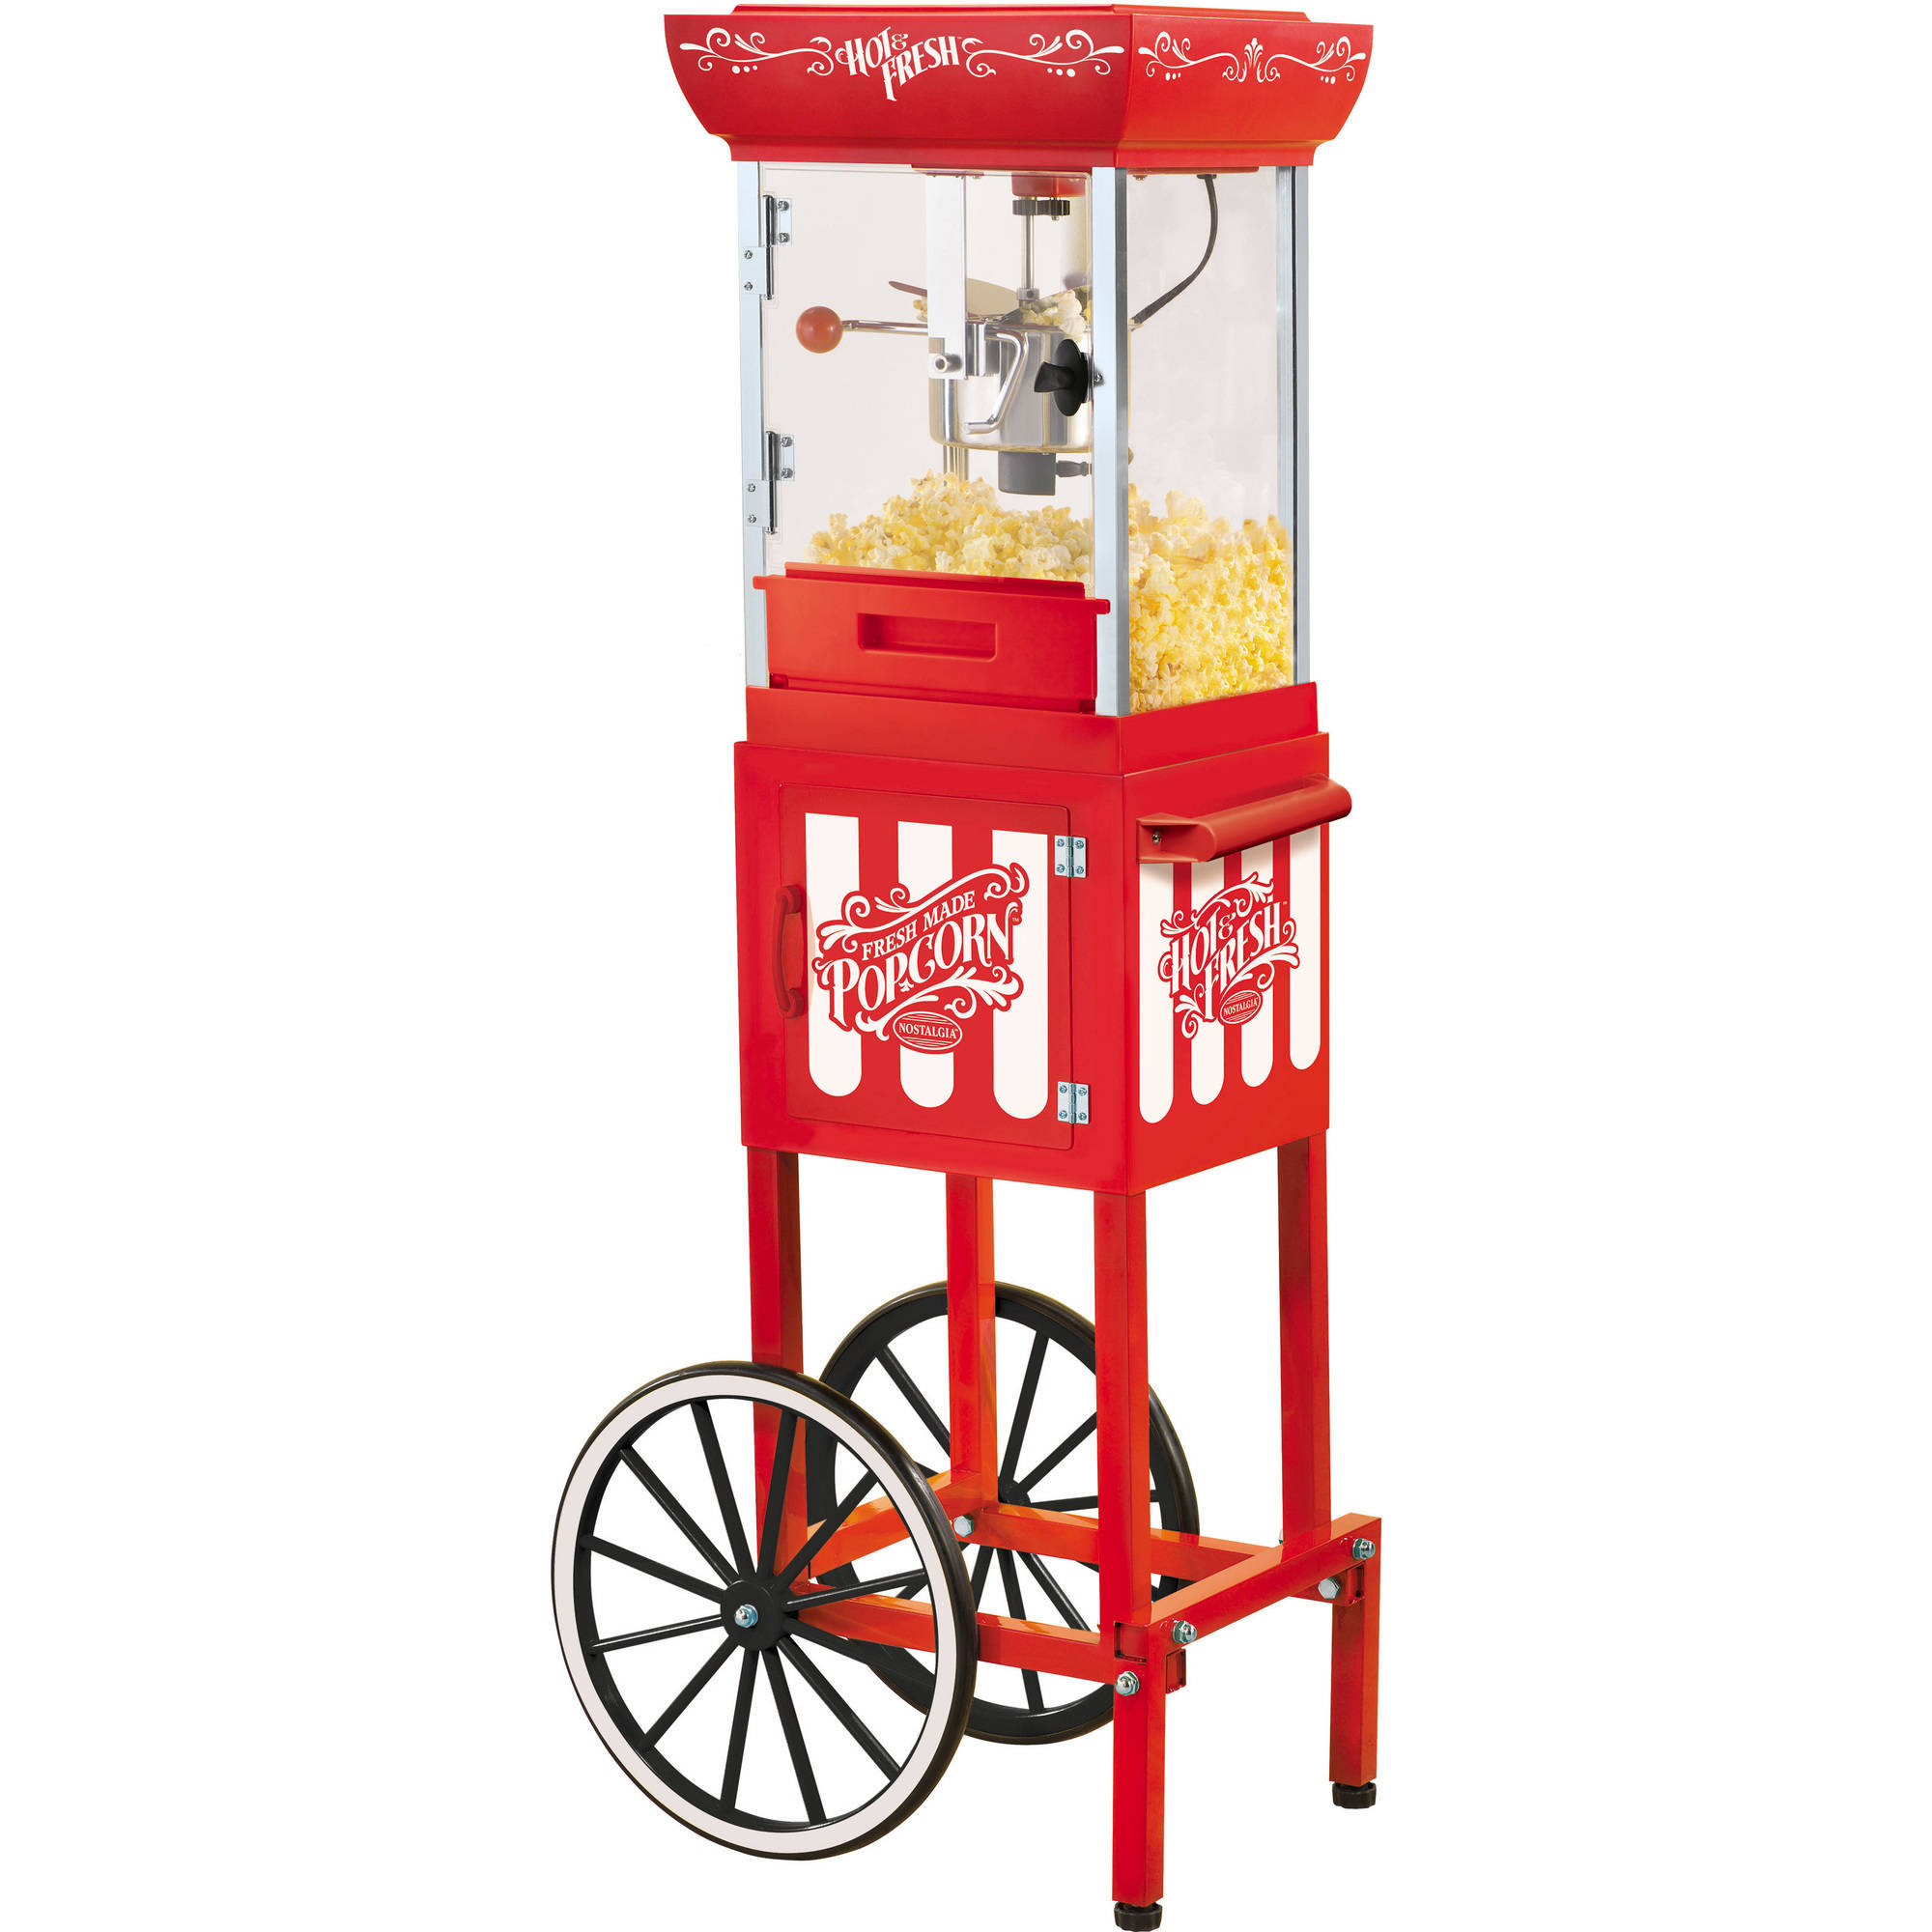 "Nostalgia CCP399 48"" Tall Vintage Collection 2.5 oz Kettle Popcorn Cart"